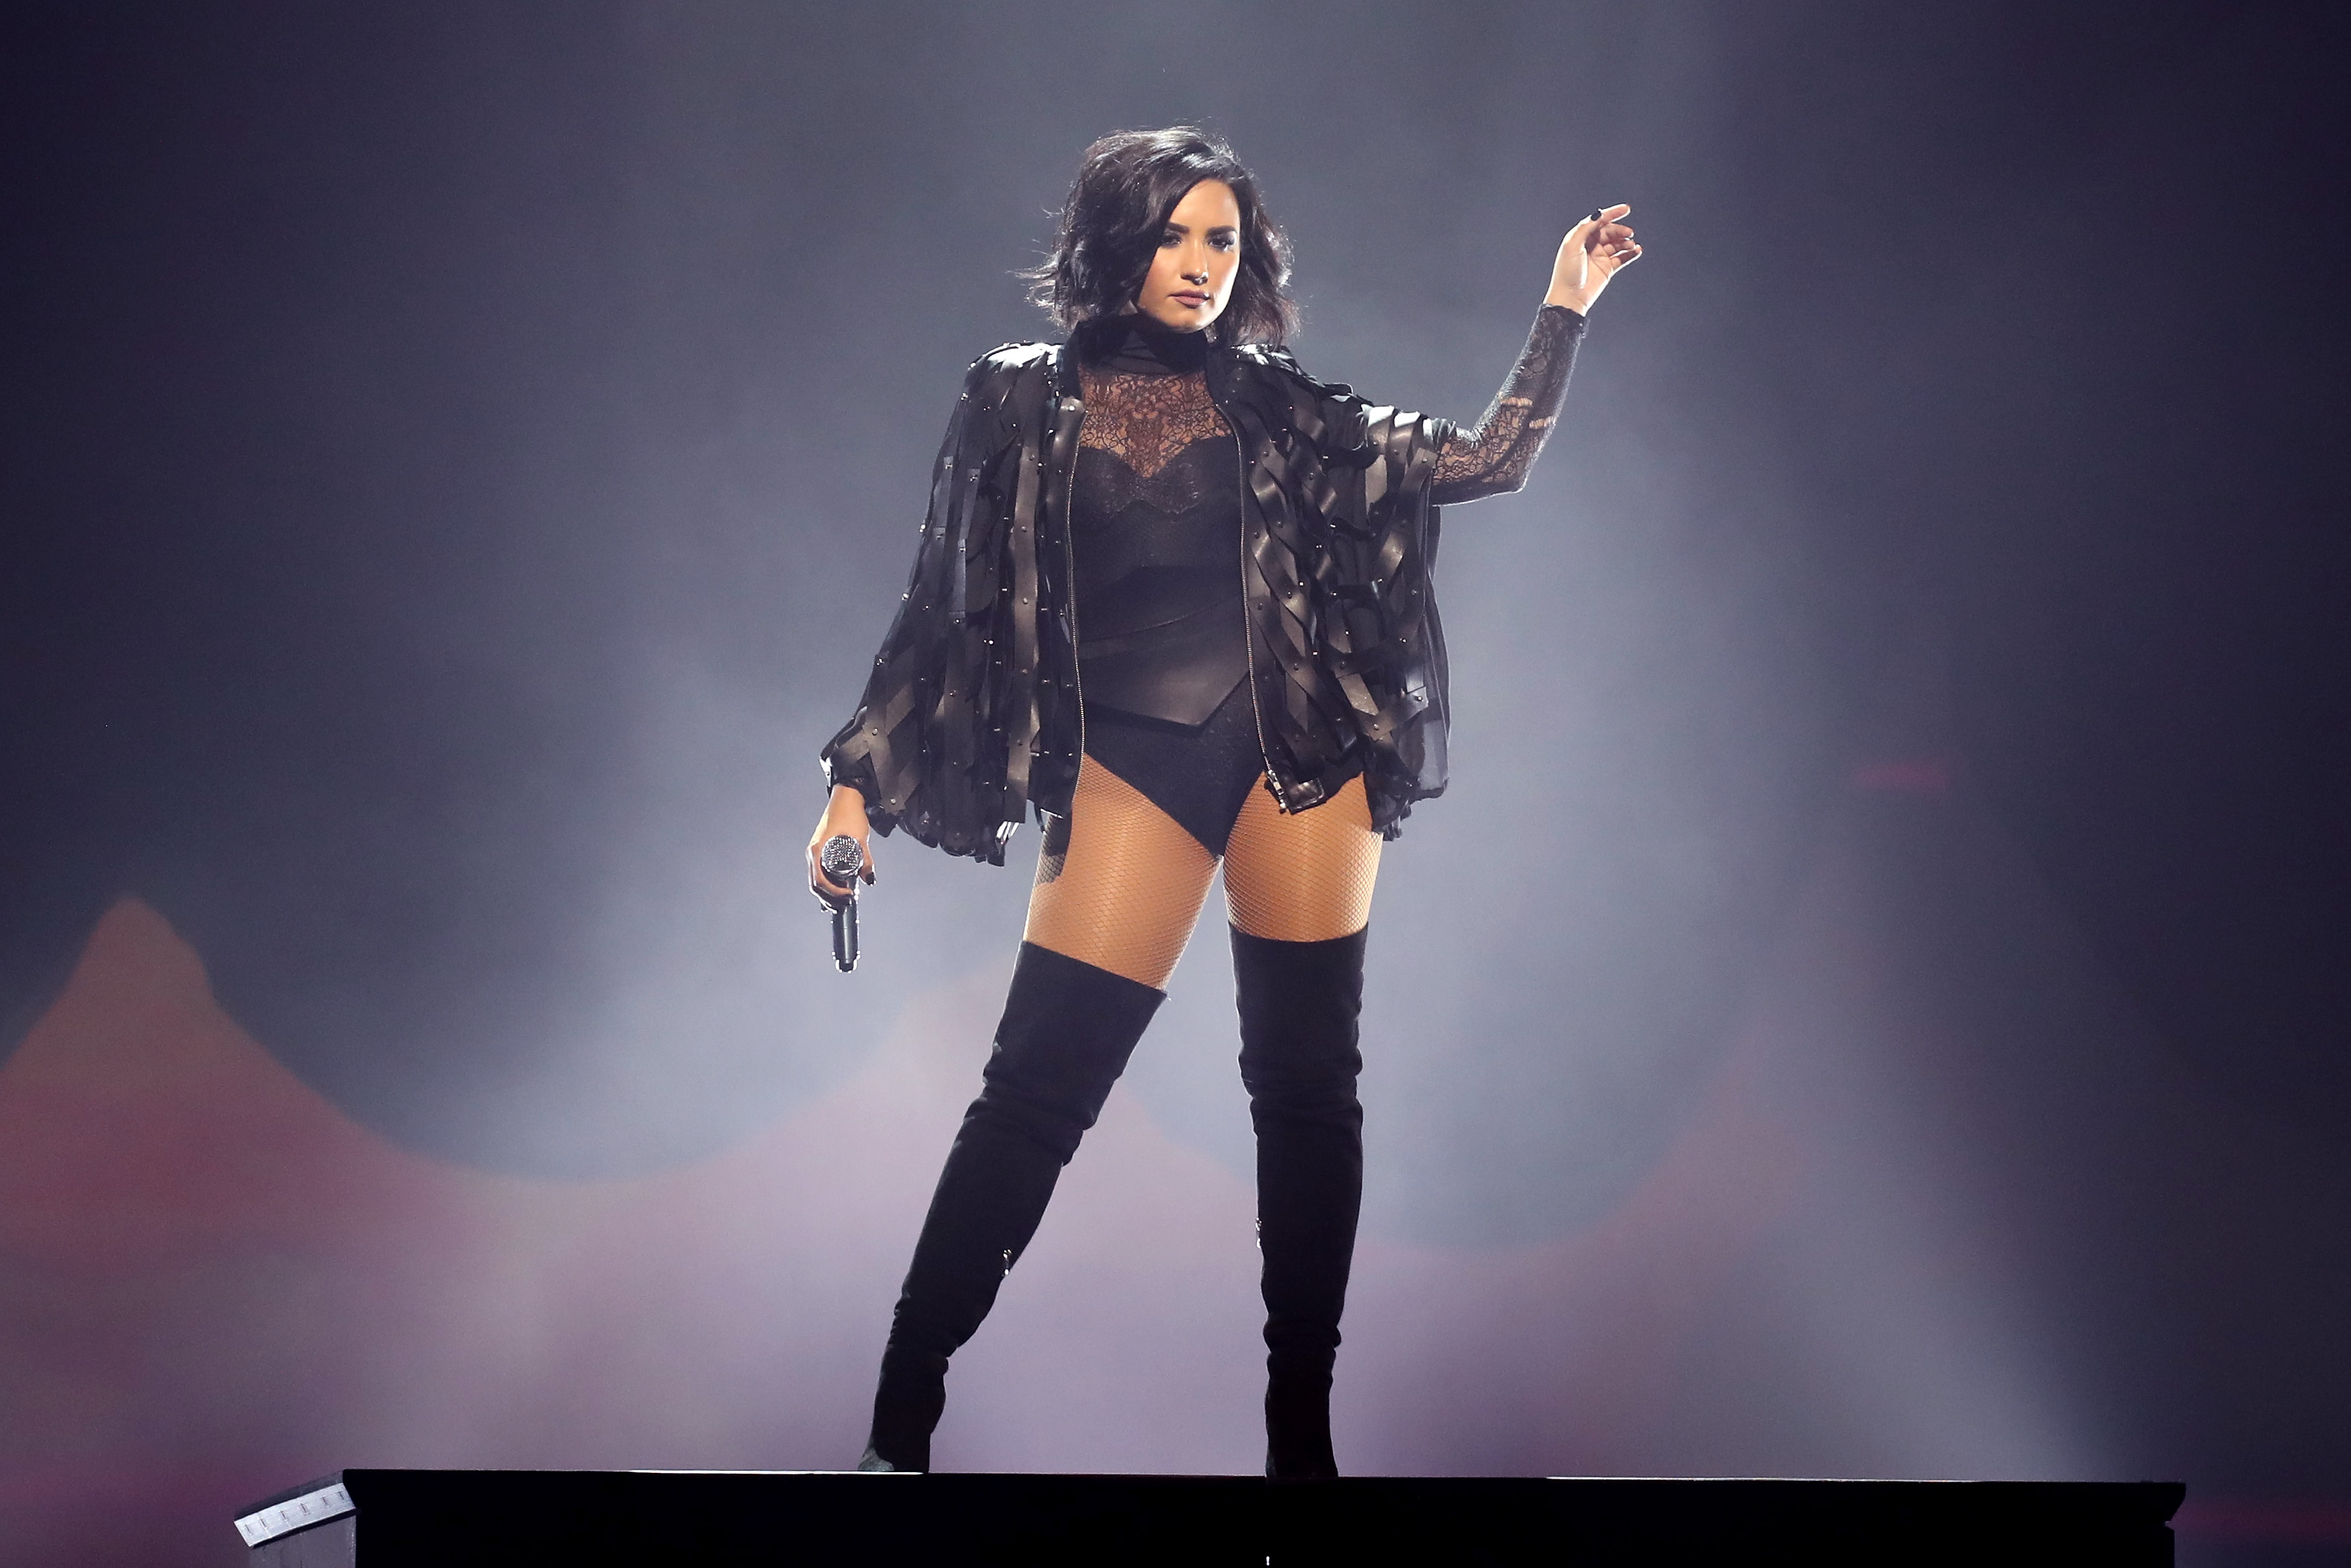 Demi Lovato Cars >> Happy Birthday Demi Lovato! 20 Things You Likely Didn't Know About This Latina Superstar